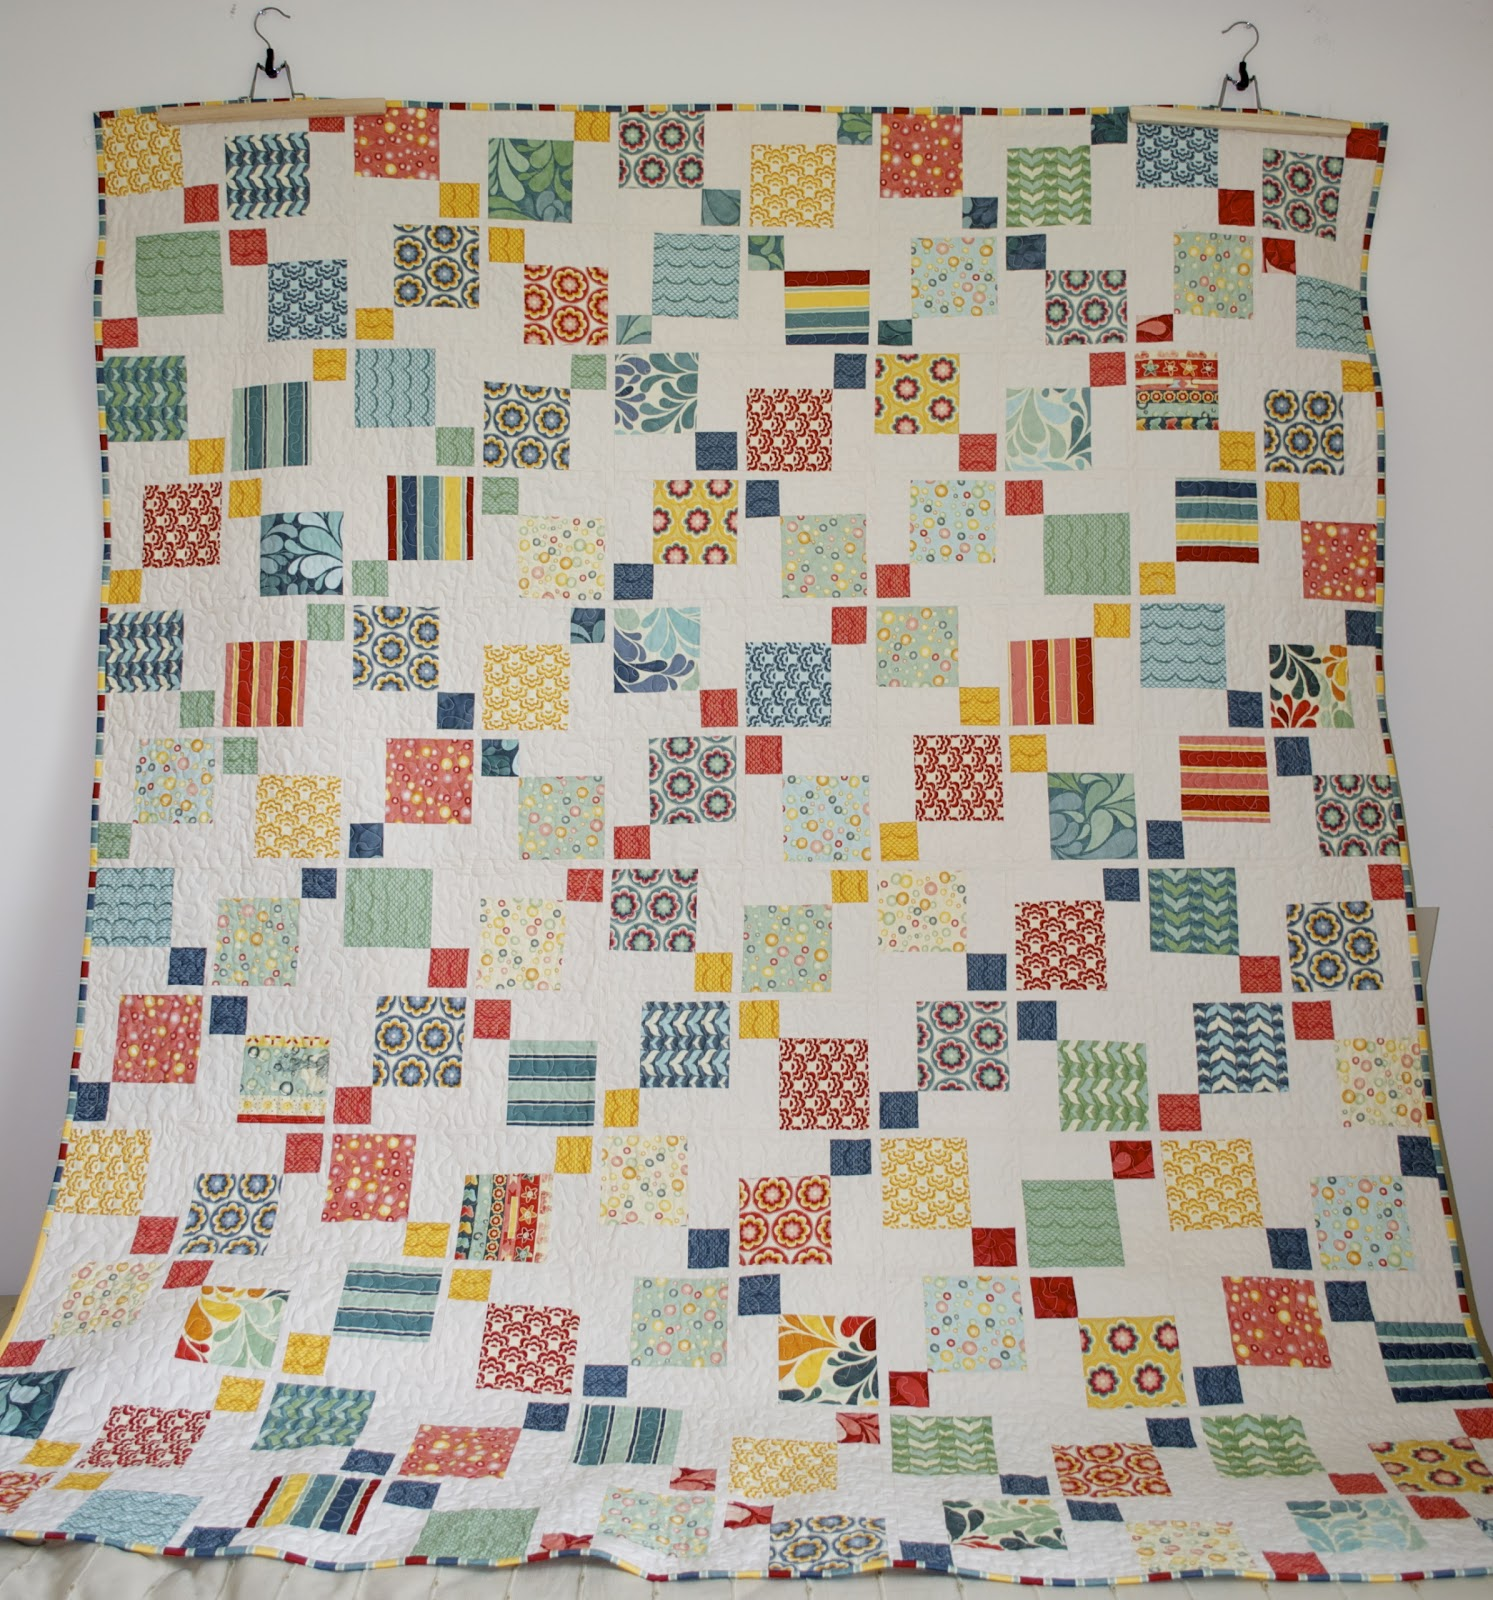 Disappearing 9 patch quilt with 3 colors